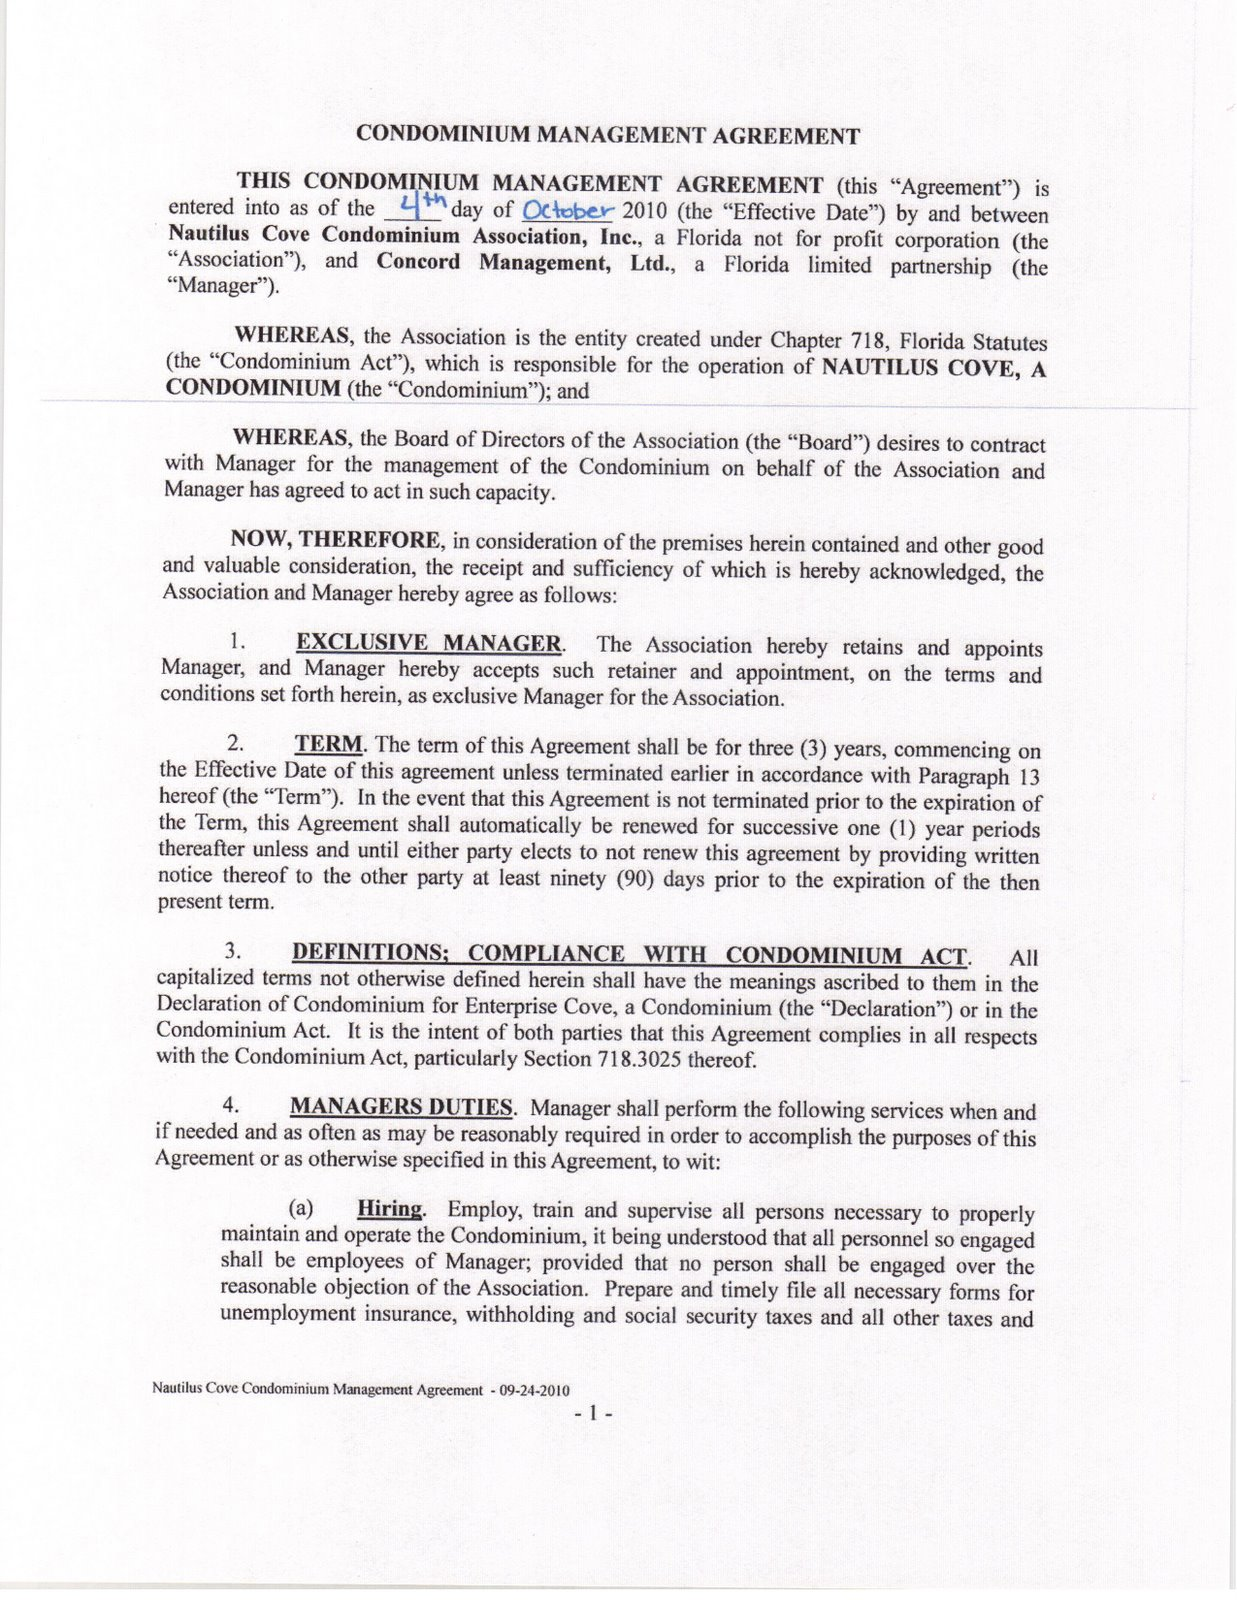 Nautilus Cove Condominium Concord Management Agreement Of Oct 4 2010